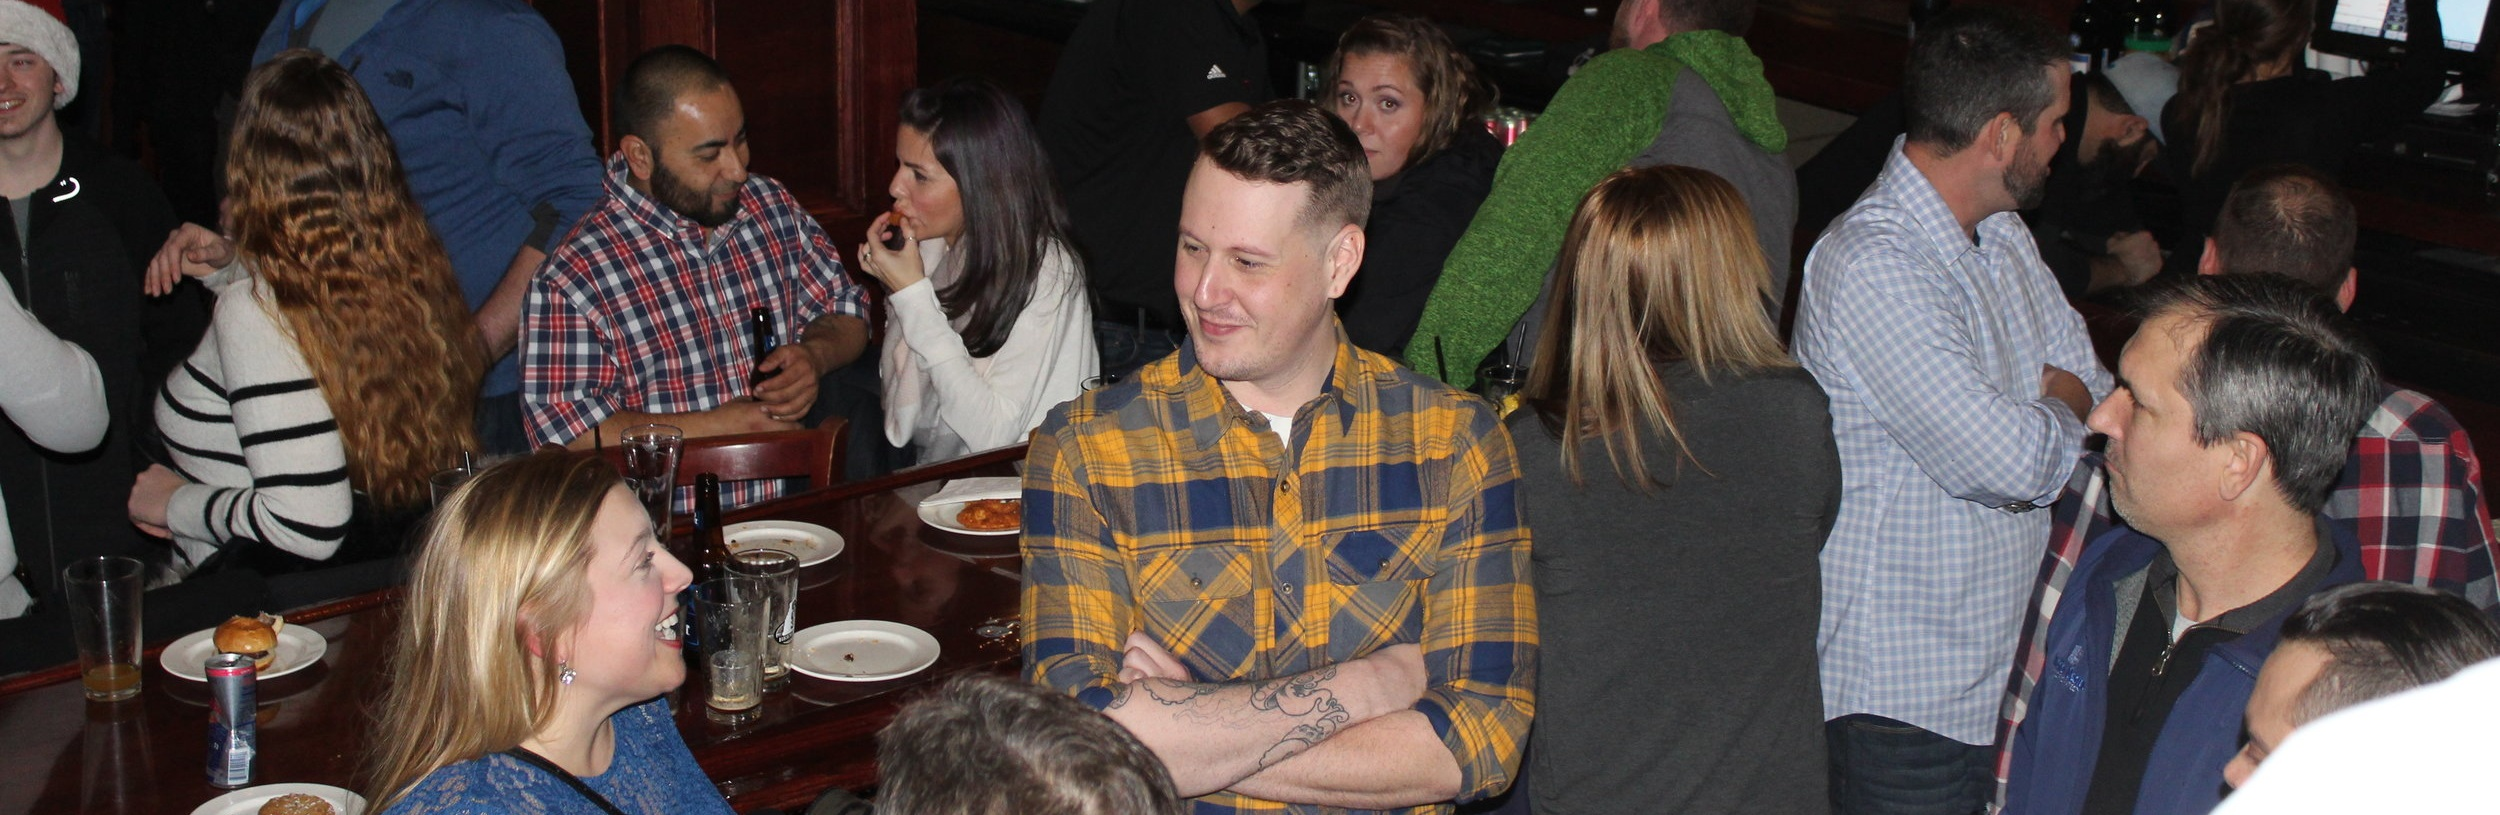 Atlantic Prefab celebrates the holidays as a team at Murphy's Taproom.